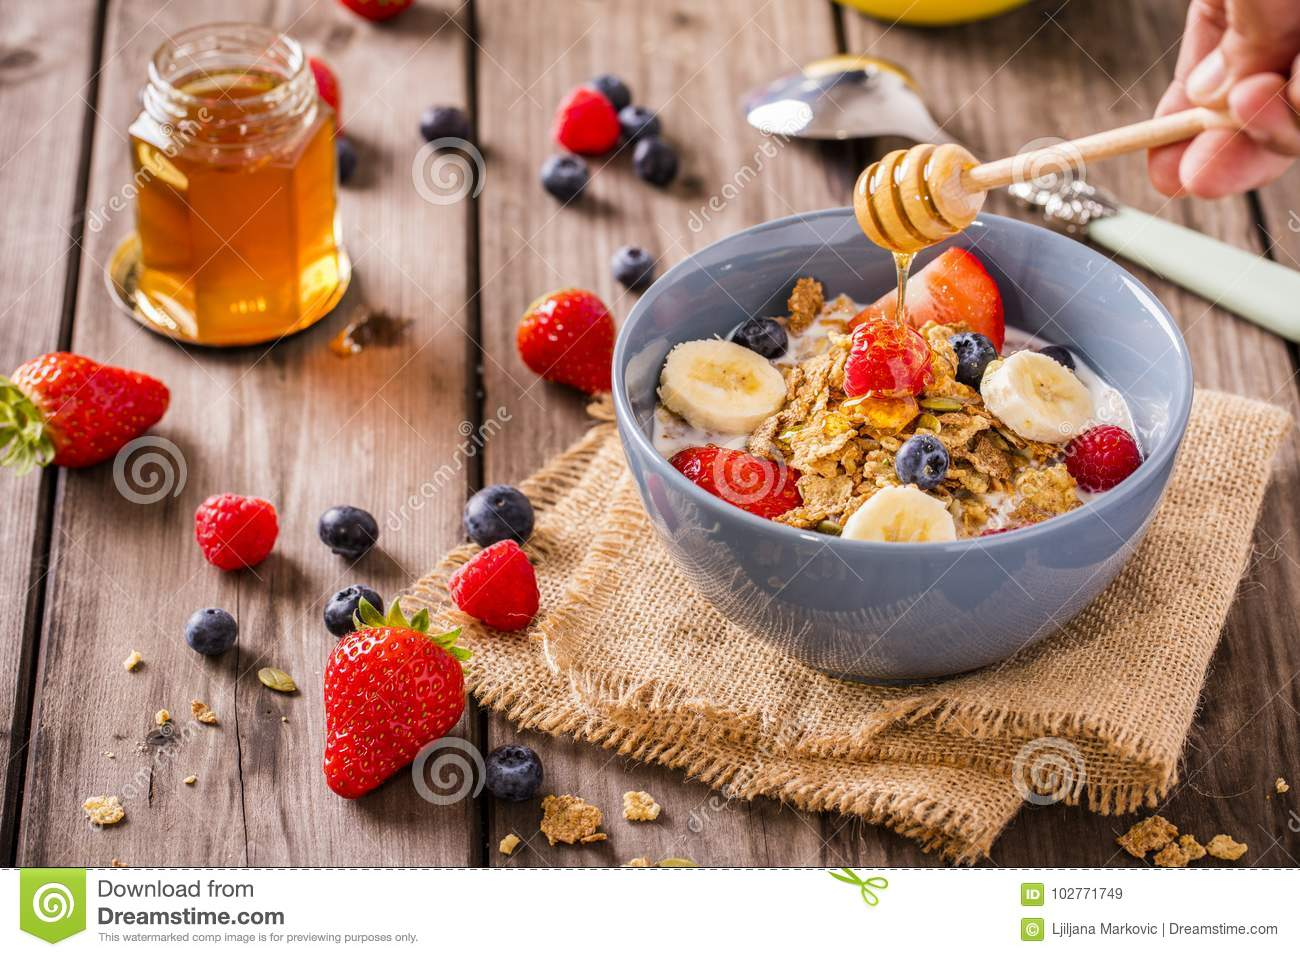 Breakfast cereal rustic with a hand swirling honey